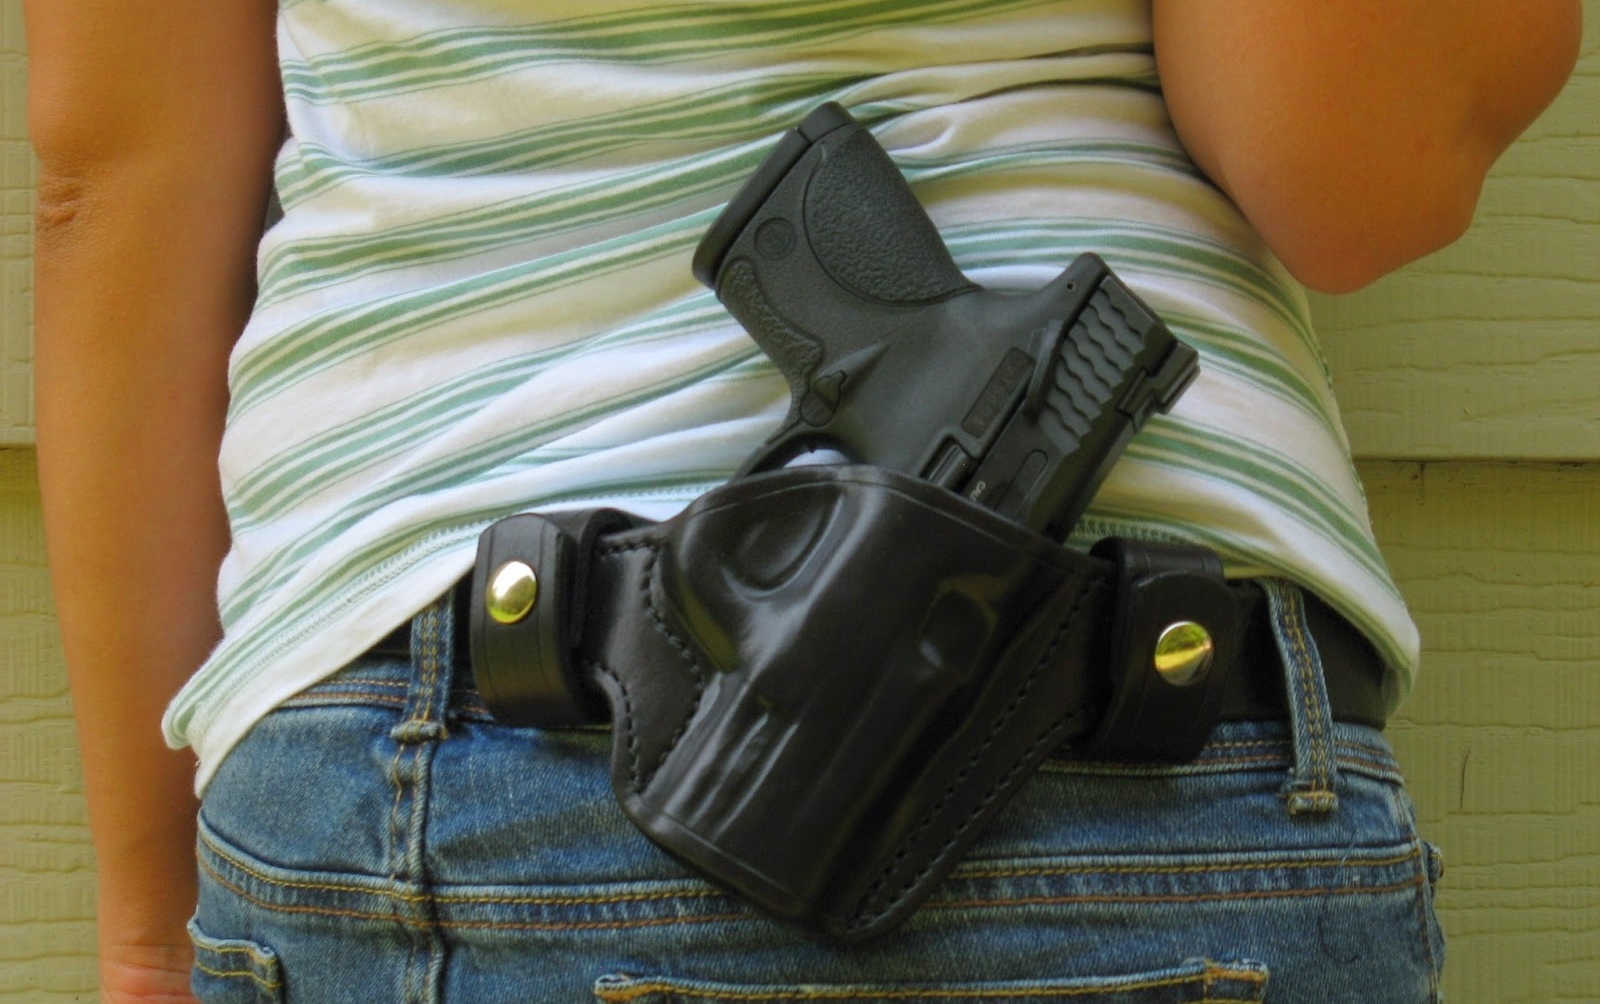 The 5 Best Bodyguard 380 IWB Holsters [Reviewed] - 2019 Guide